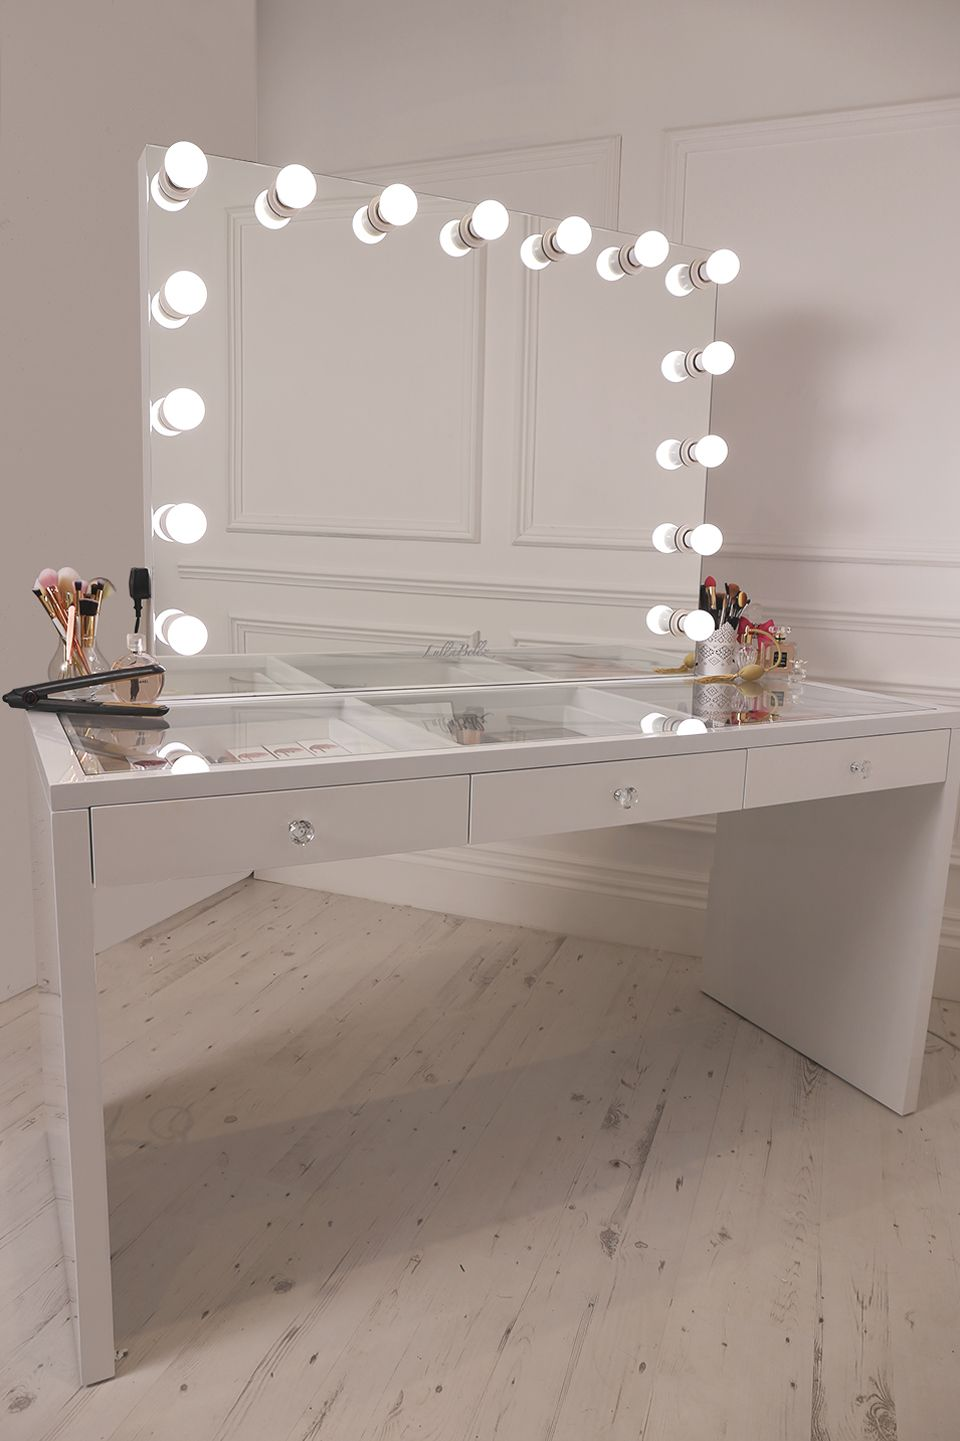 Lighted Vanity Mirror With Storage : crisp white finish Slaystation make up vanity with premium storage, three spacious drawers ...